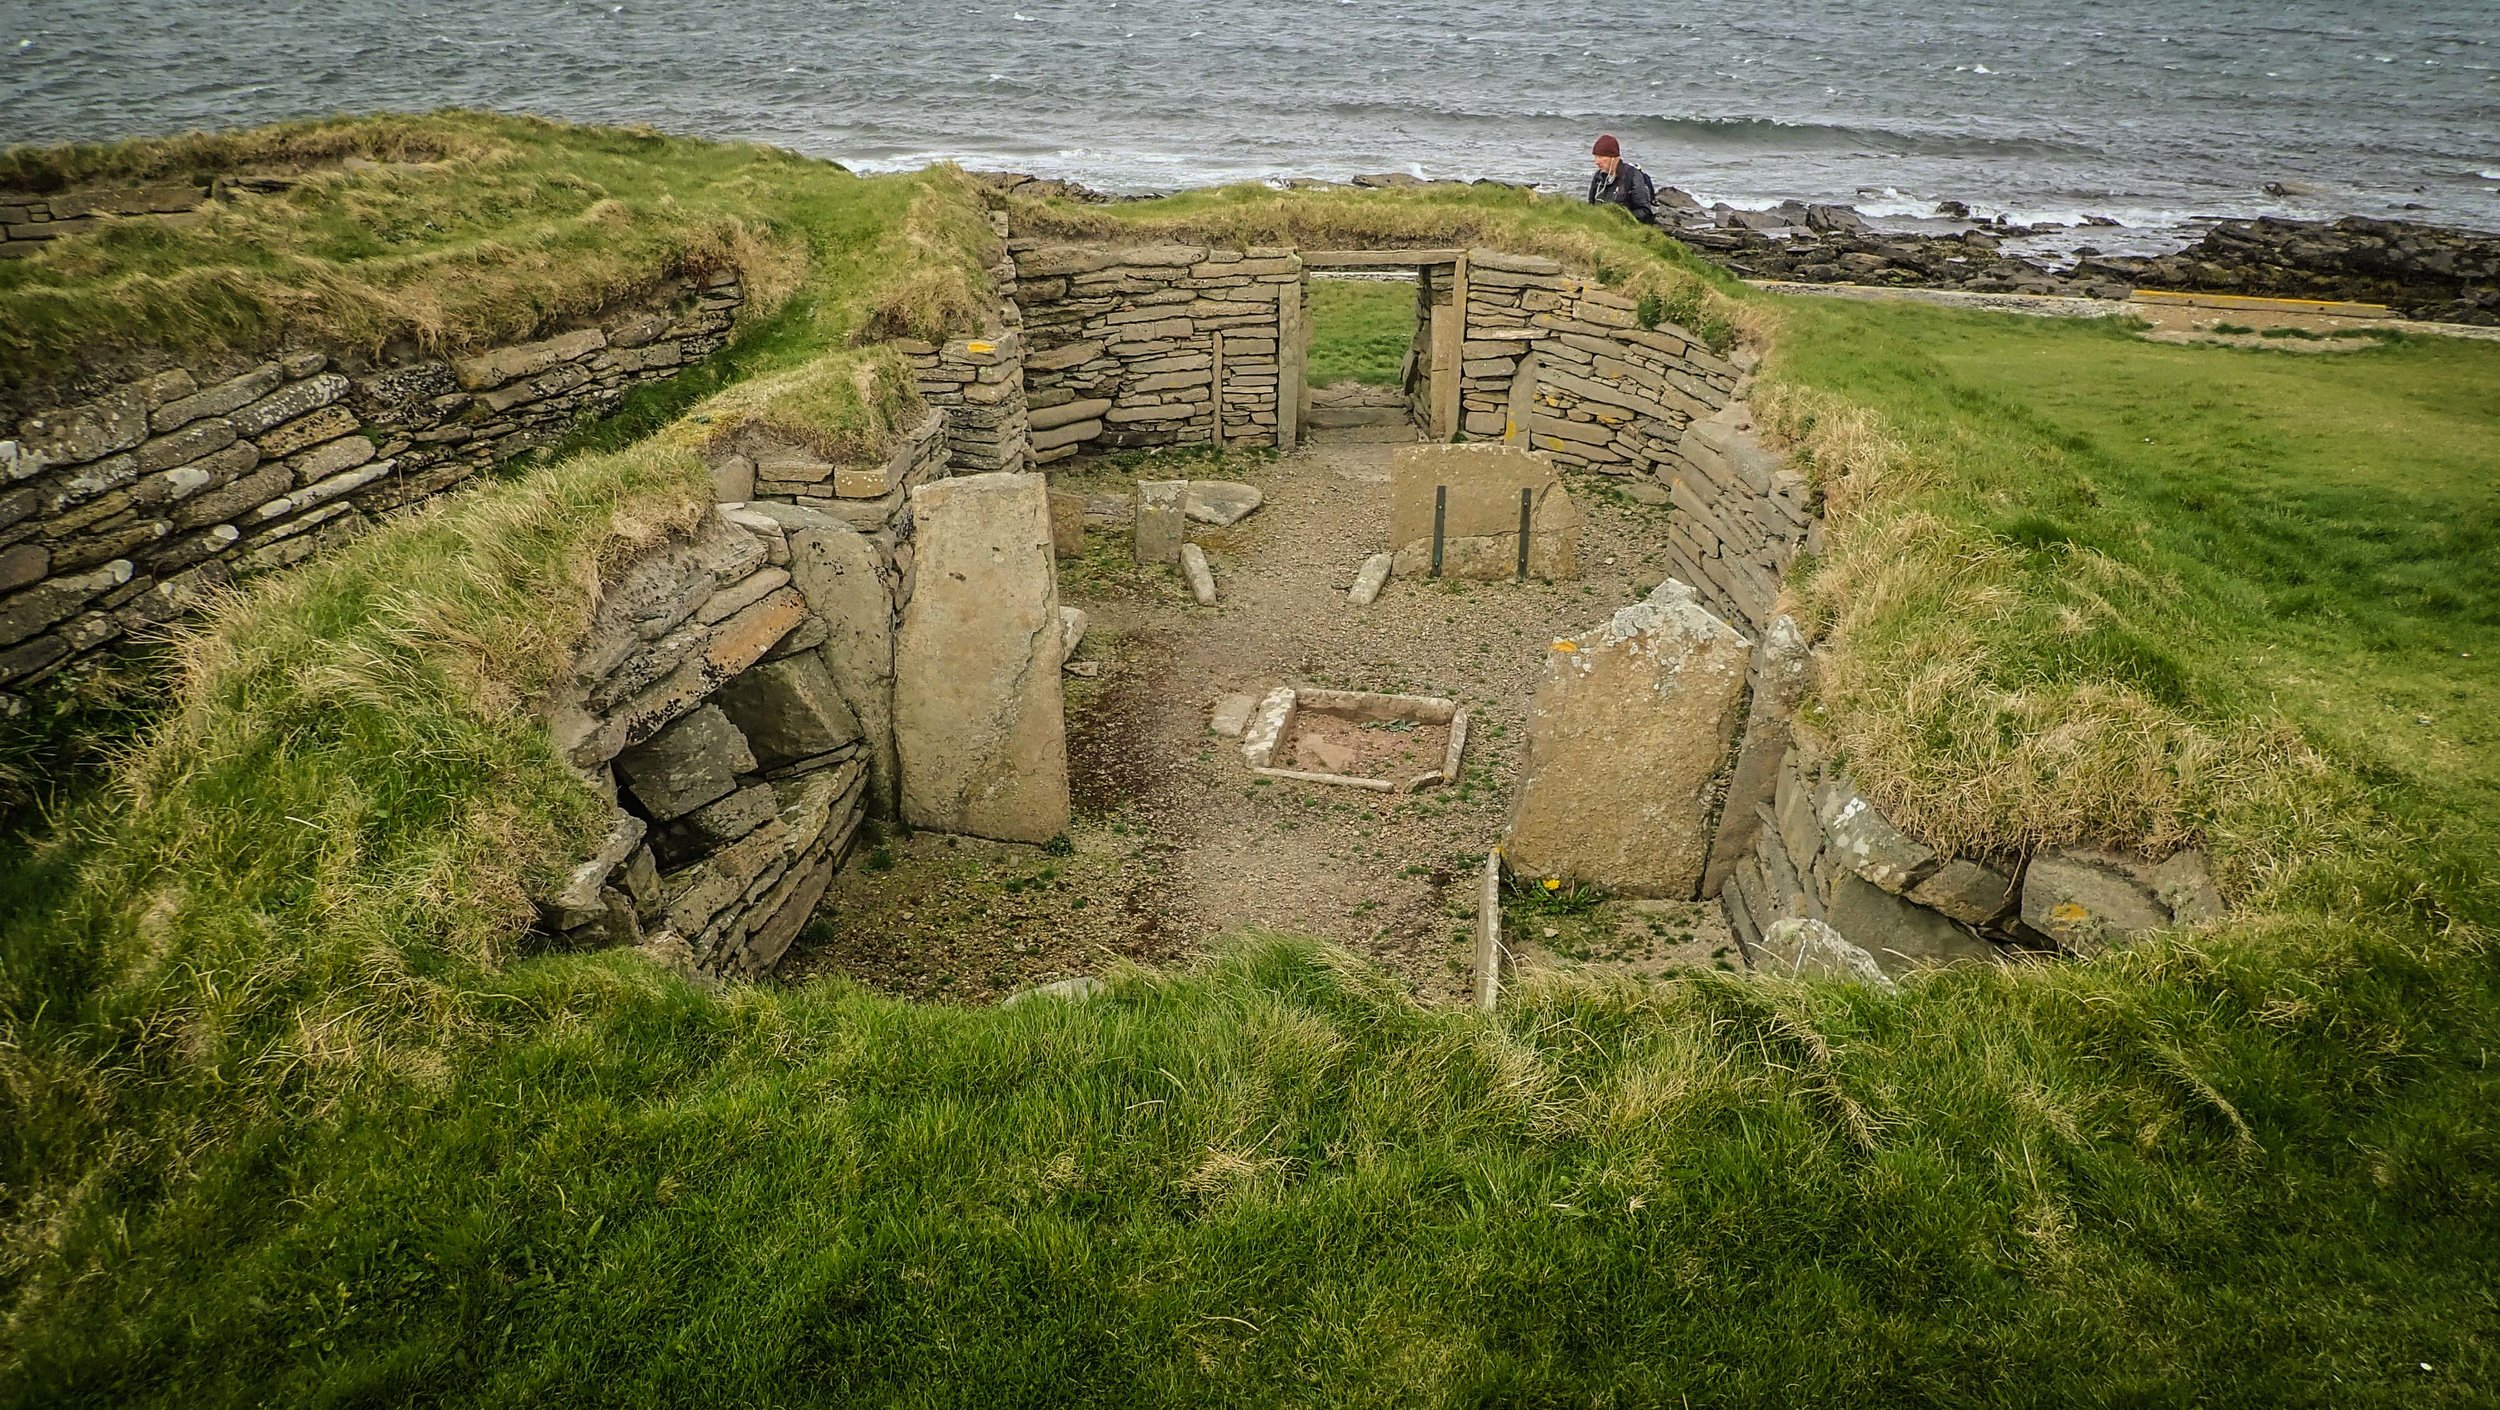 The oldest standing dwelling in Europe, more than 1000 years older than the pyramids still provides shelter from the rain.